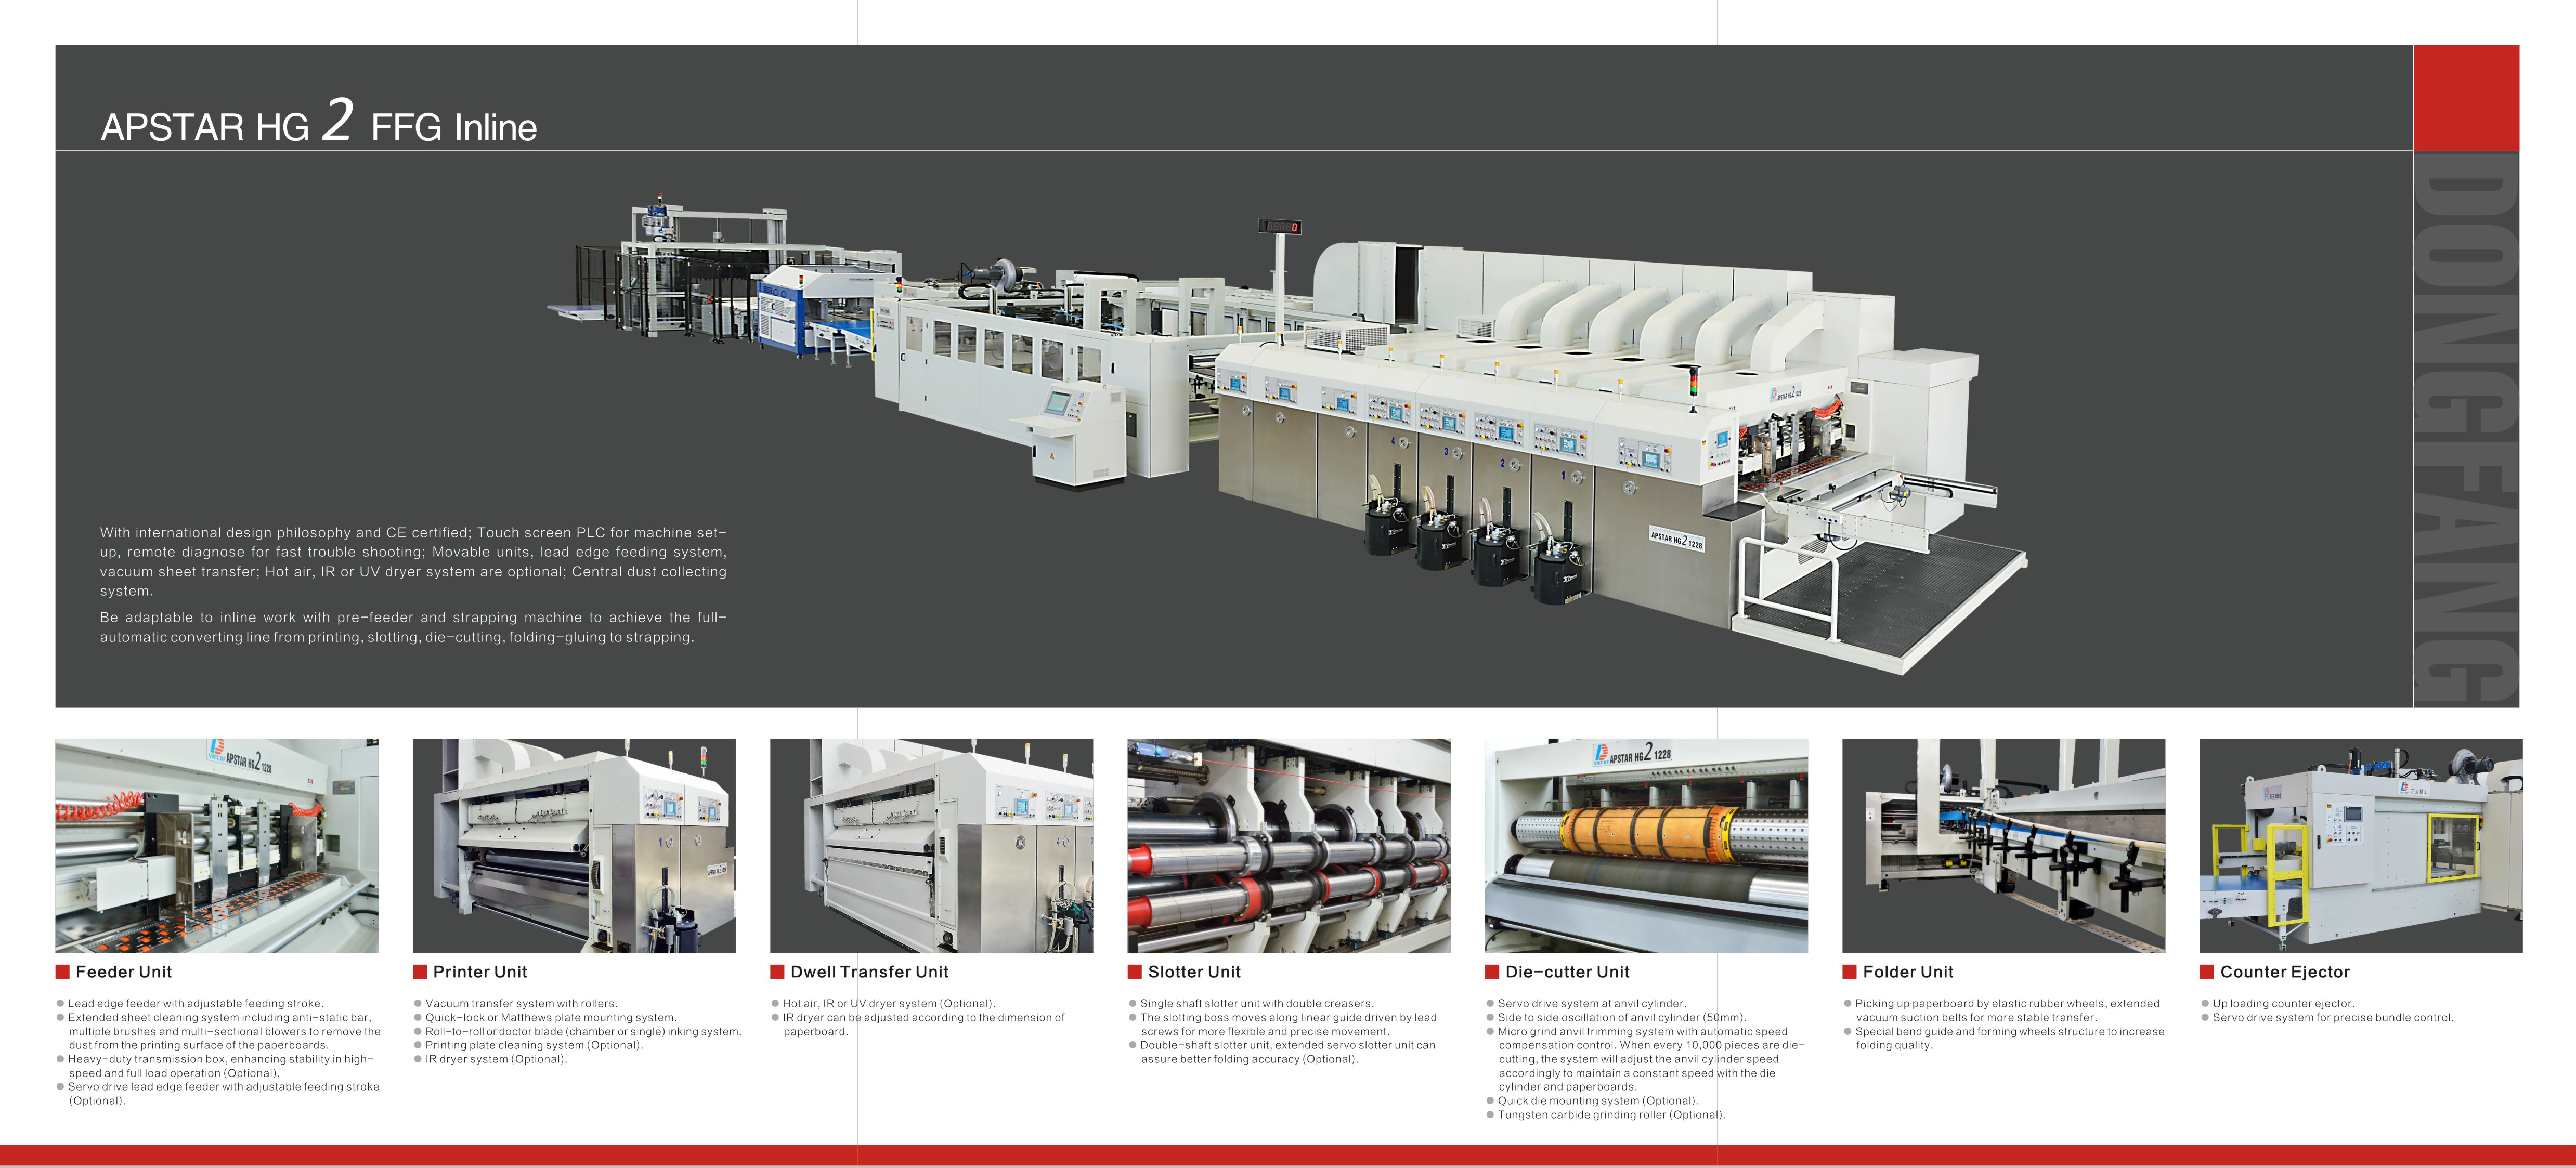 Learn more about the Apstar HG2 Flexo Folder Gluer Inline in the Dong Fang brochure.